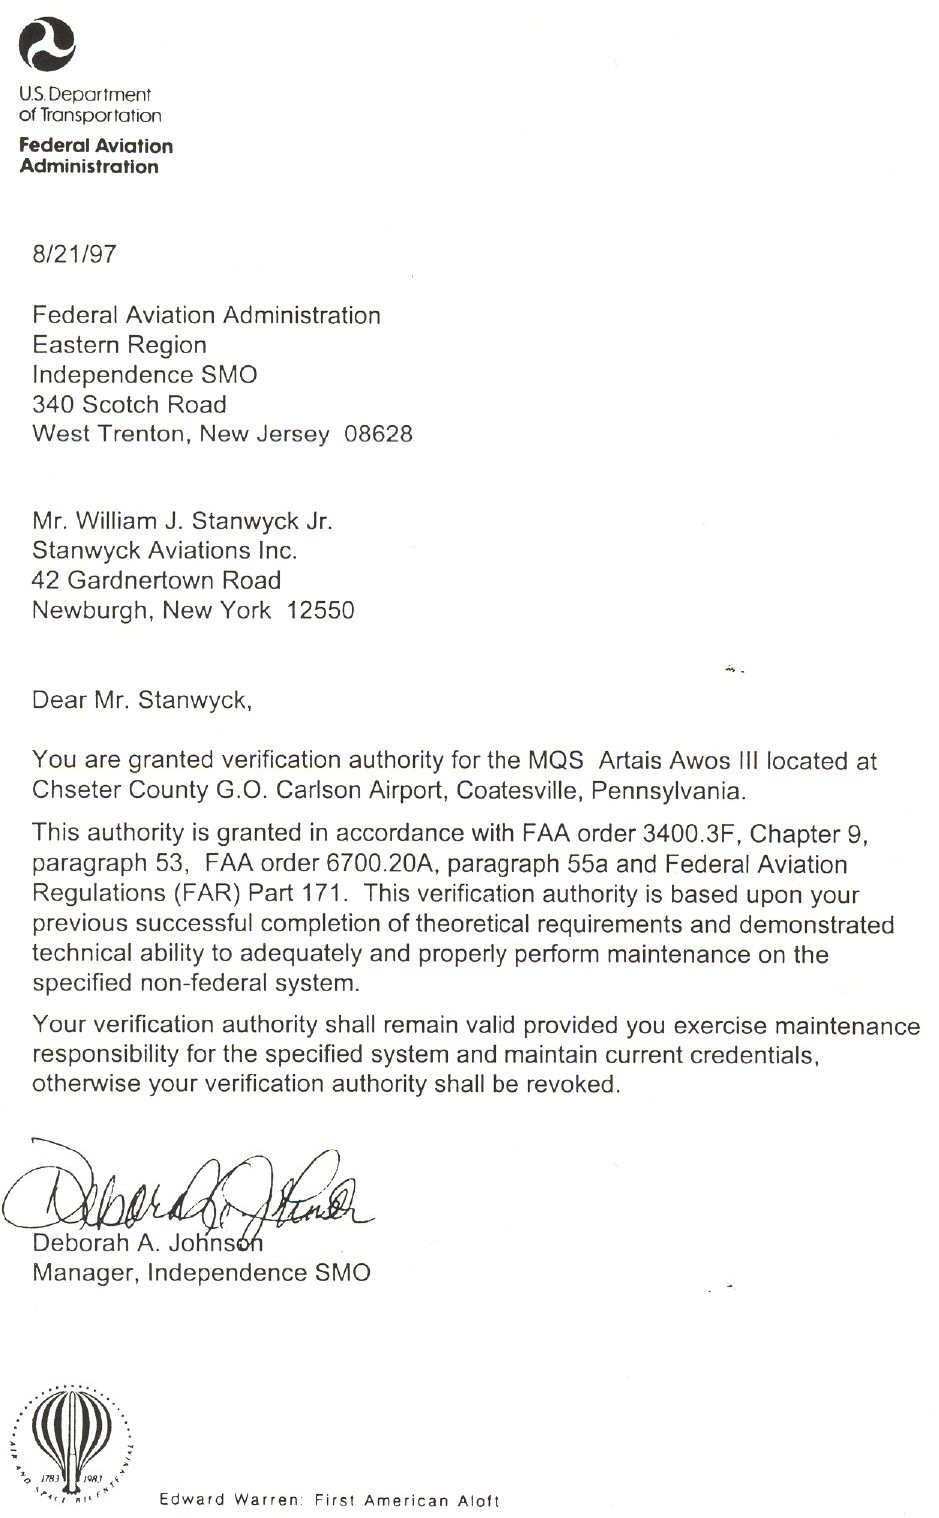 US Department Of Transportation Federal Aviation Administration Letter 2